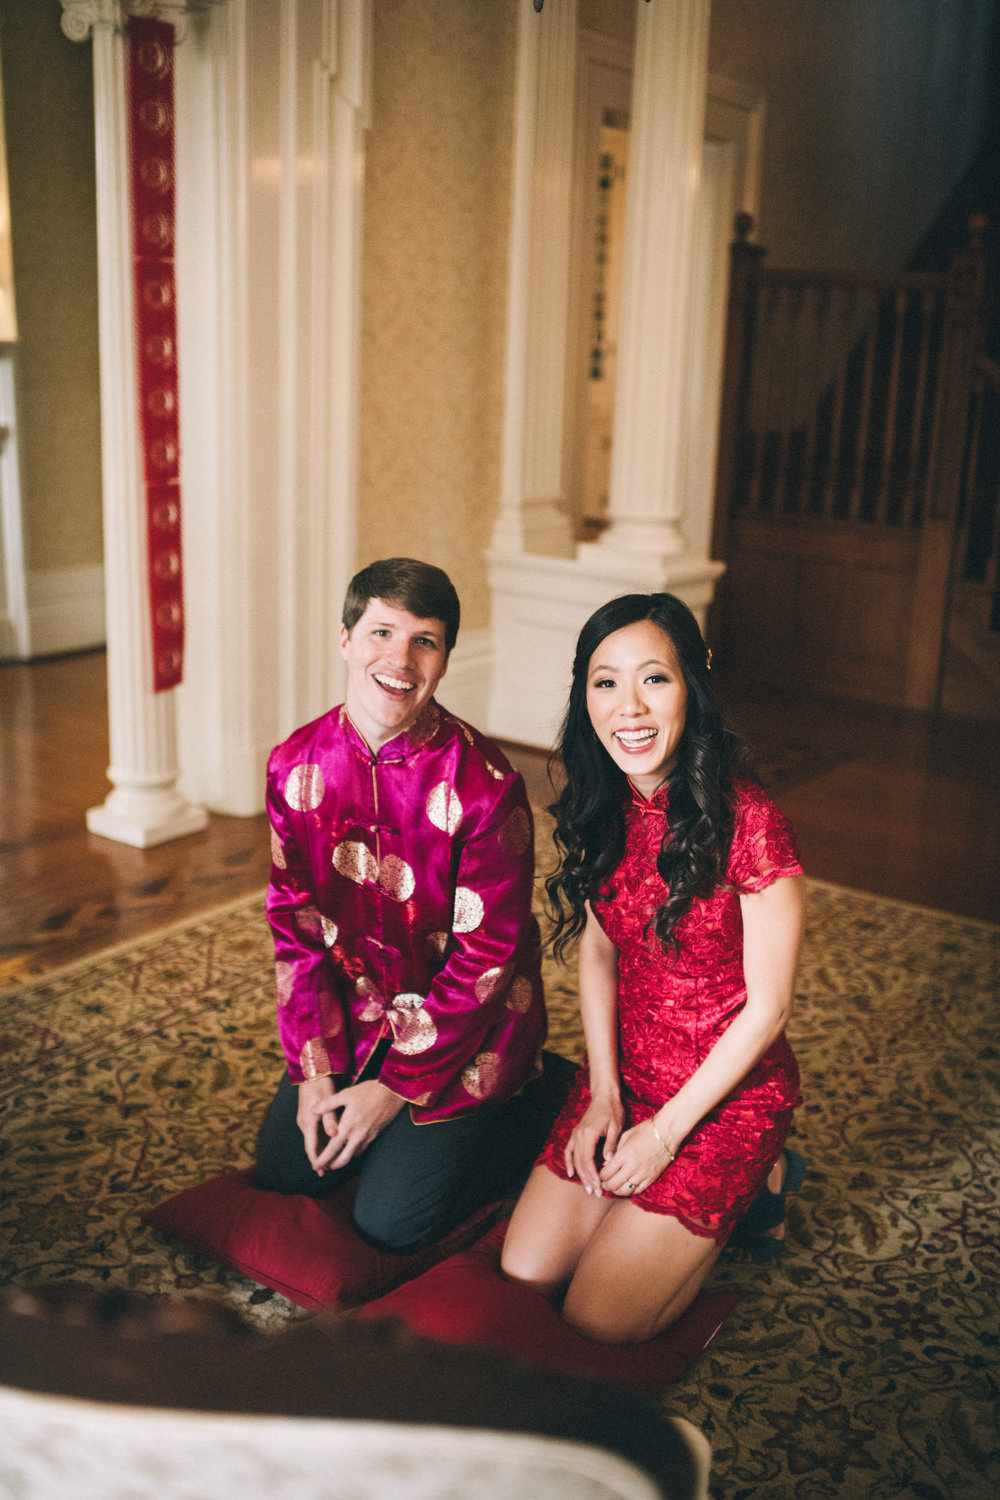 Louisville-Kentucky-Wedding-and-Elopement-Photographer-Sarah-Katherine-Davis-Photography-Summer-Jewel-Toned-Wedding-Chineese-Tea-Ceremony-Warrenwood-Manor-Danville-330.jpg